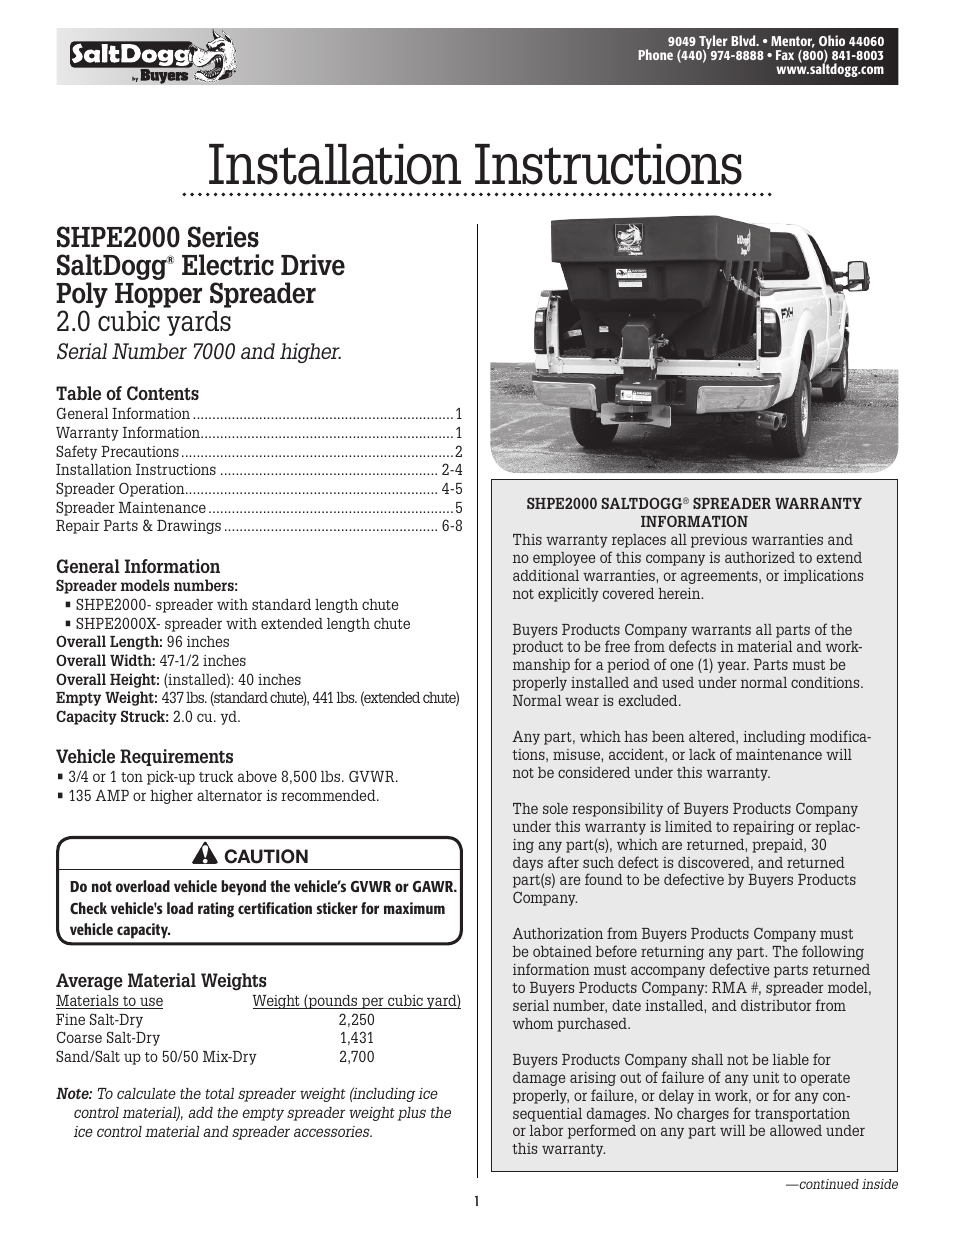 Buyers Saltdogg Shpe2000 Salt Spreader Wiring Diagram Series Electric Drive Poly Hopper V3 User Manual 8 Pages